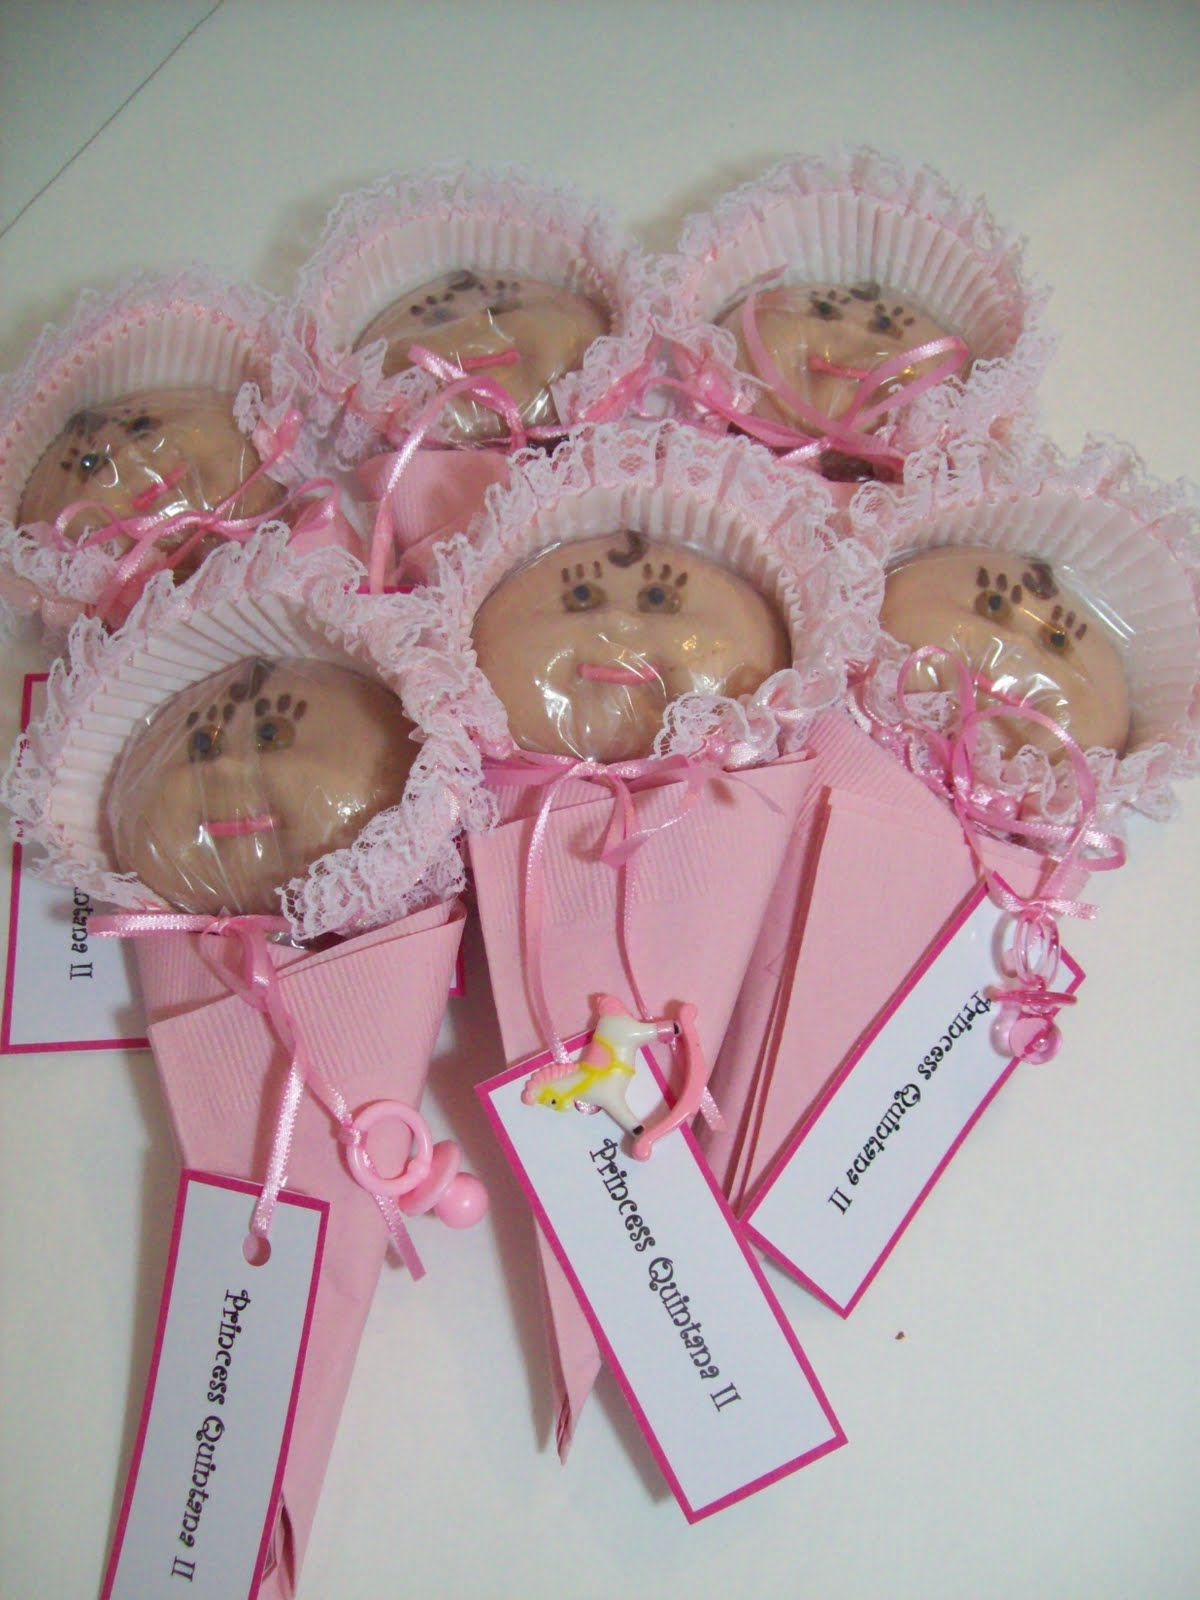 shower party shower ideas shower games baby favors baby shower favors